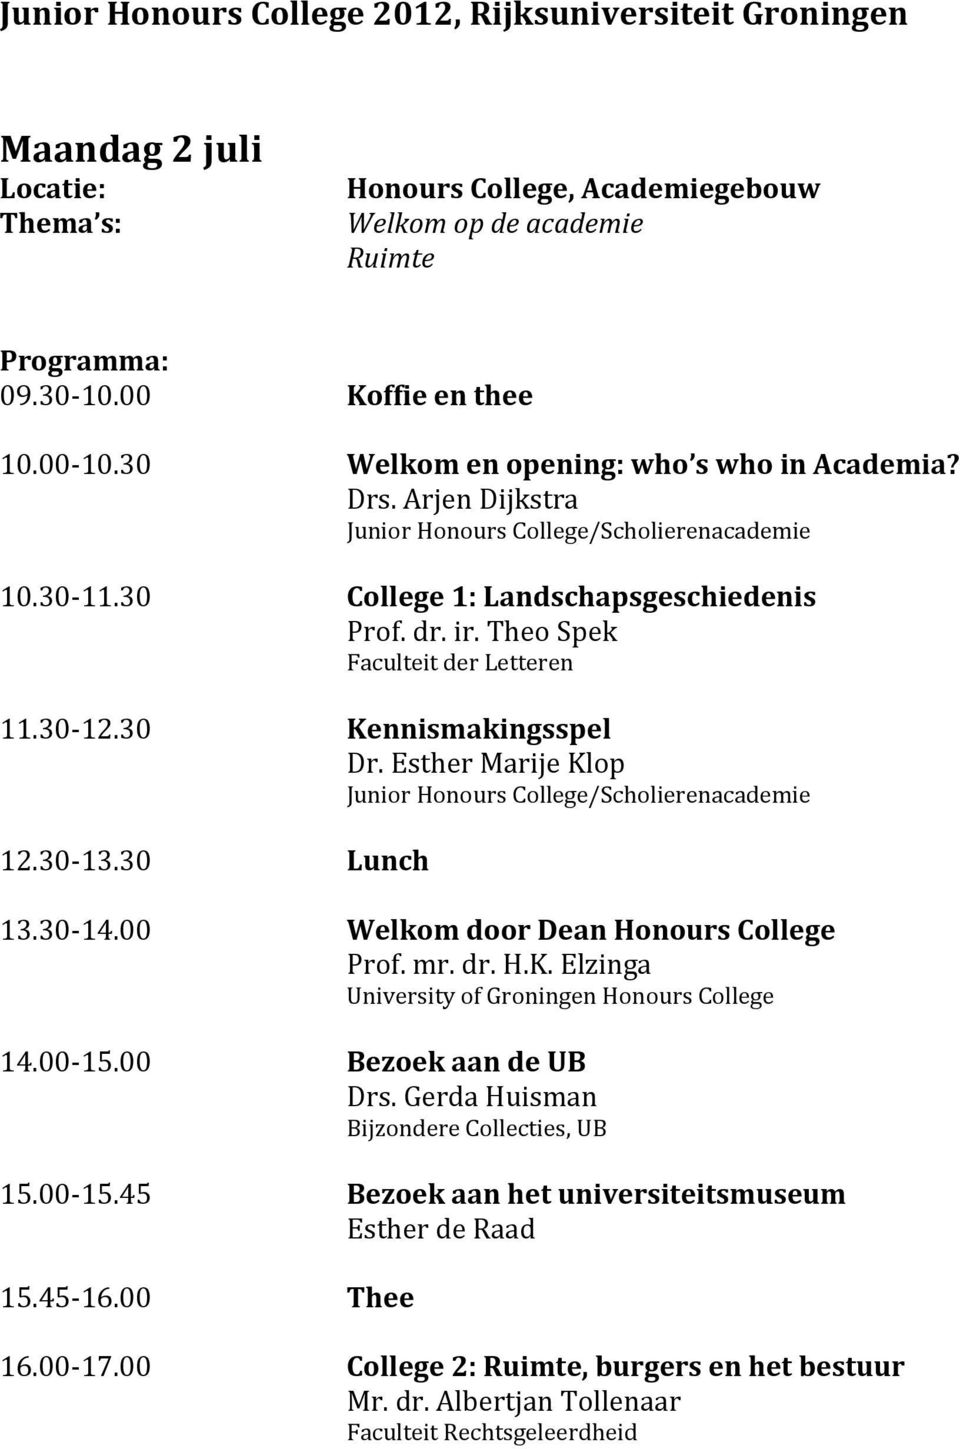 30 Kennismakingsspel Dr. Esther Marije Klop Junior Honours College/Scholierenacademie 12.30-13.30 Lunch 13.30-14.00 Welkom door Dean Honours College Prof. mr. dr. H.K. Elzinga University of Groningen Honours College 14.